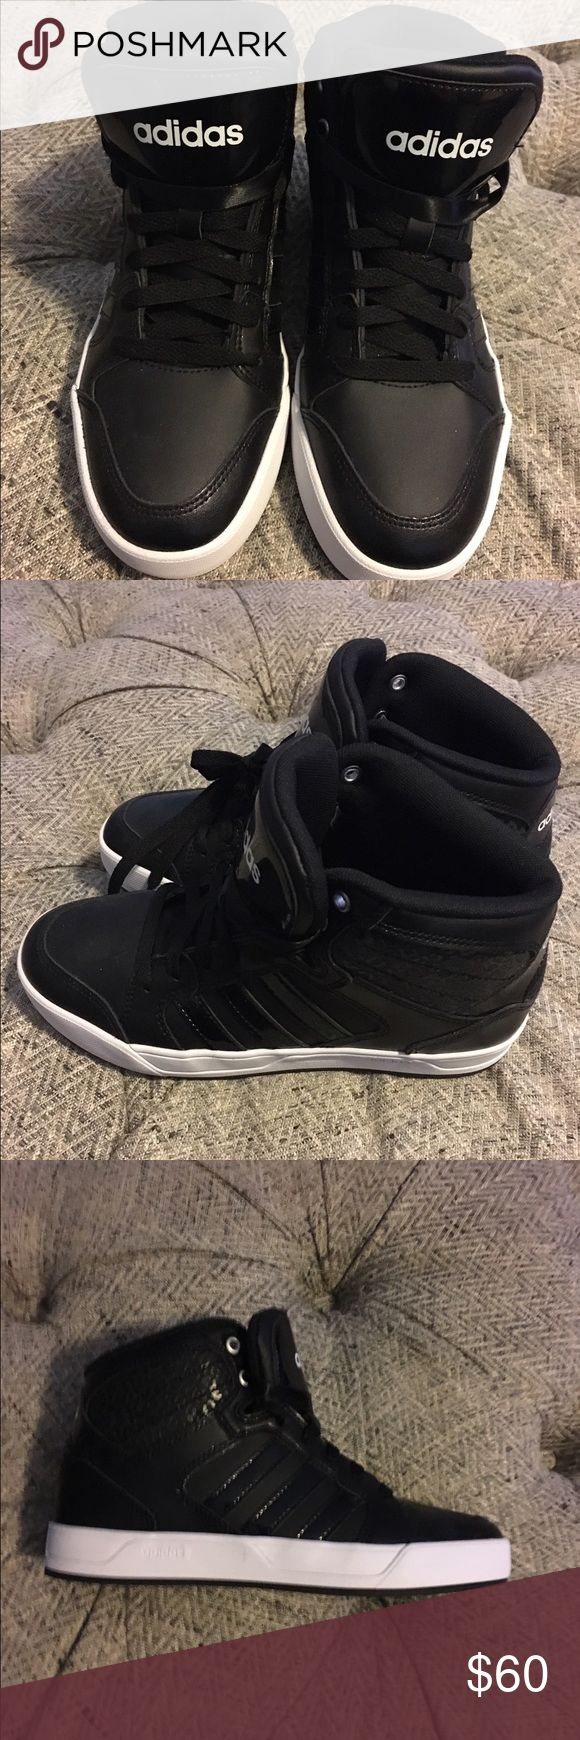 NWOT Adidas Neo High tops Black- Wm 6.5 Brand New- Never been worn, Cloud foam footbed adidas Shoes Athletic Shoes